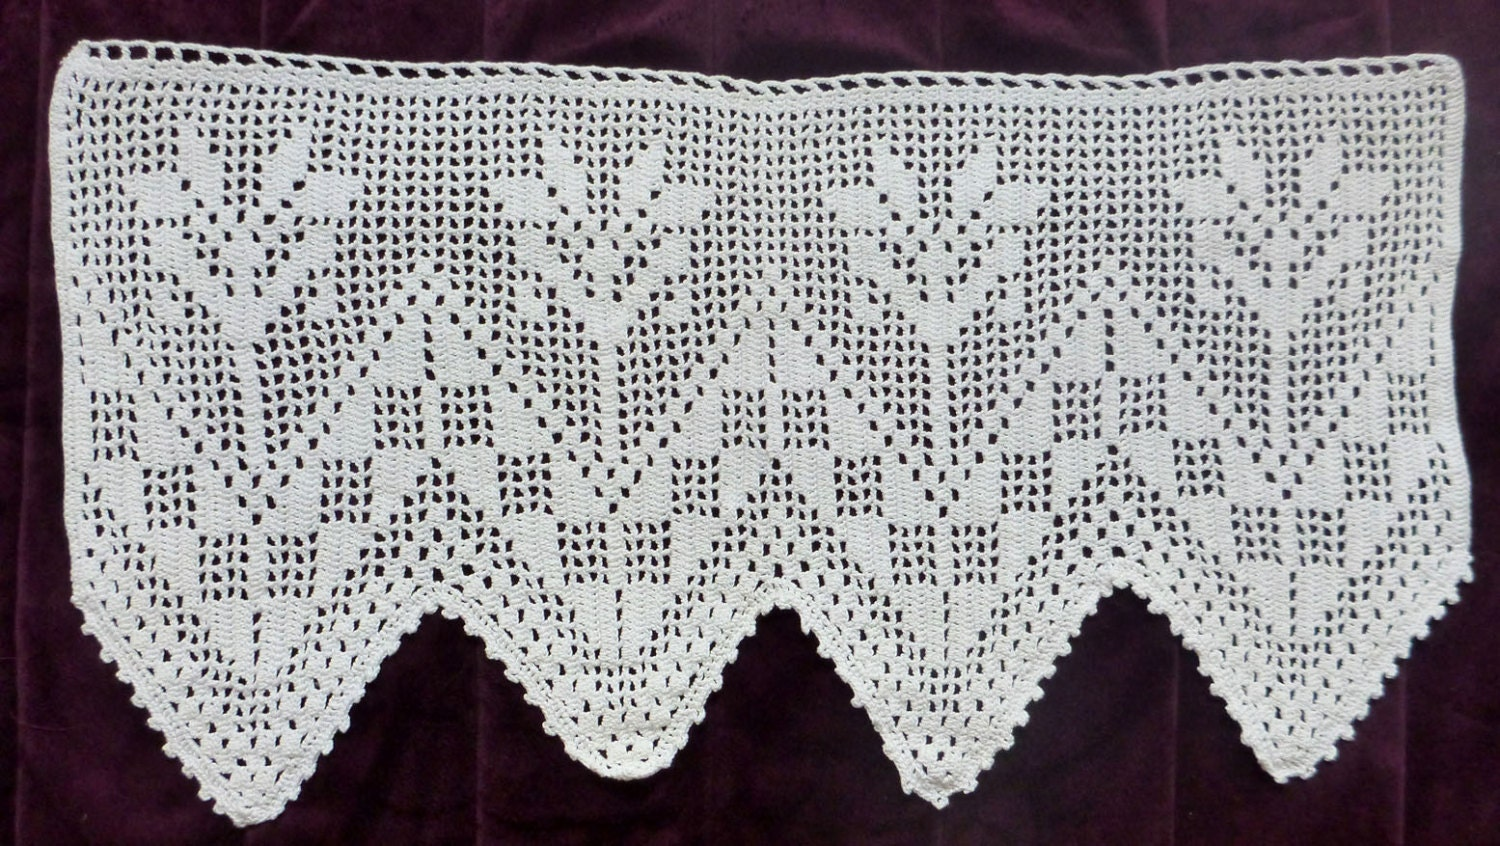 Crochet Flower Window Valance Pattern : Items similar to Vintage Crocheted Window Valance floral ...